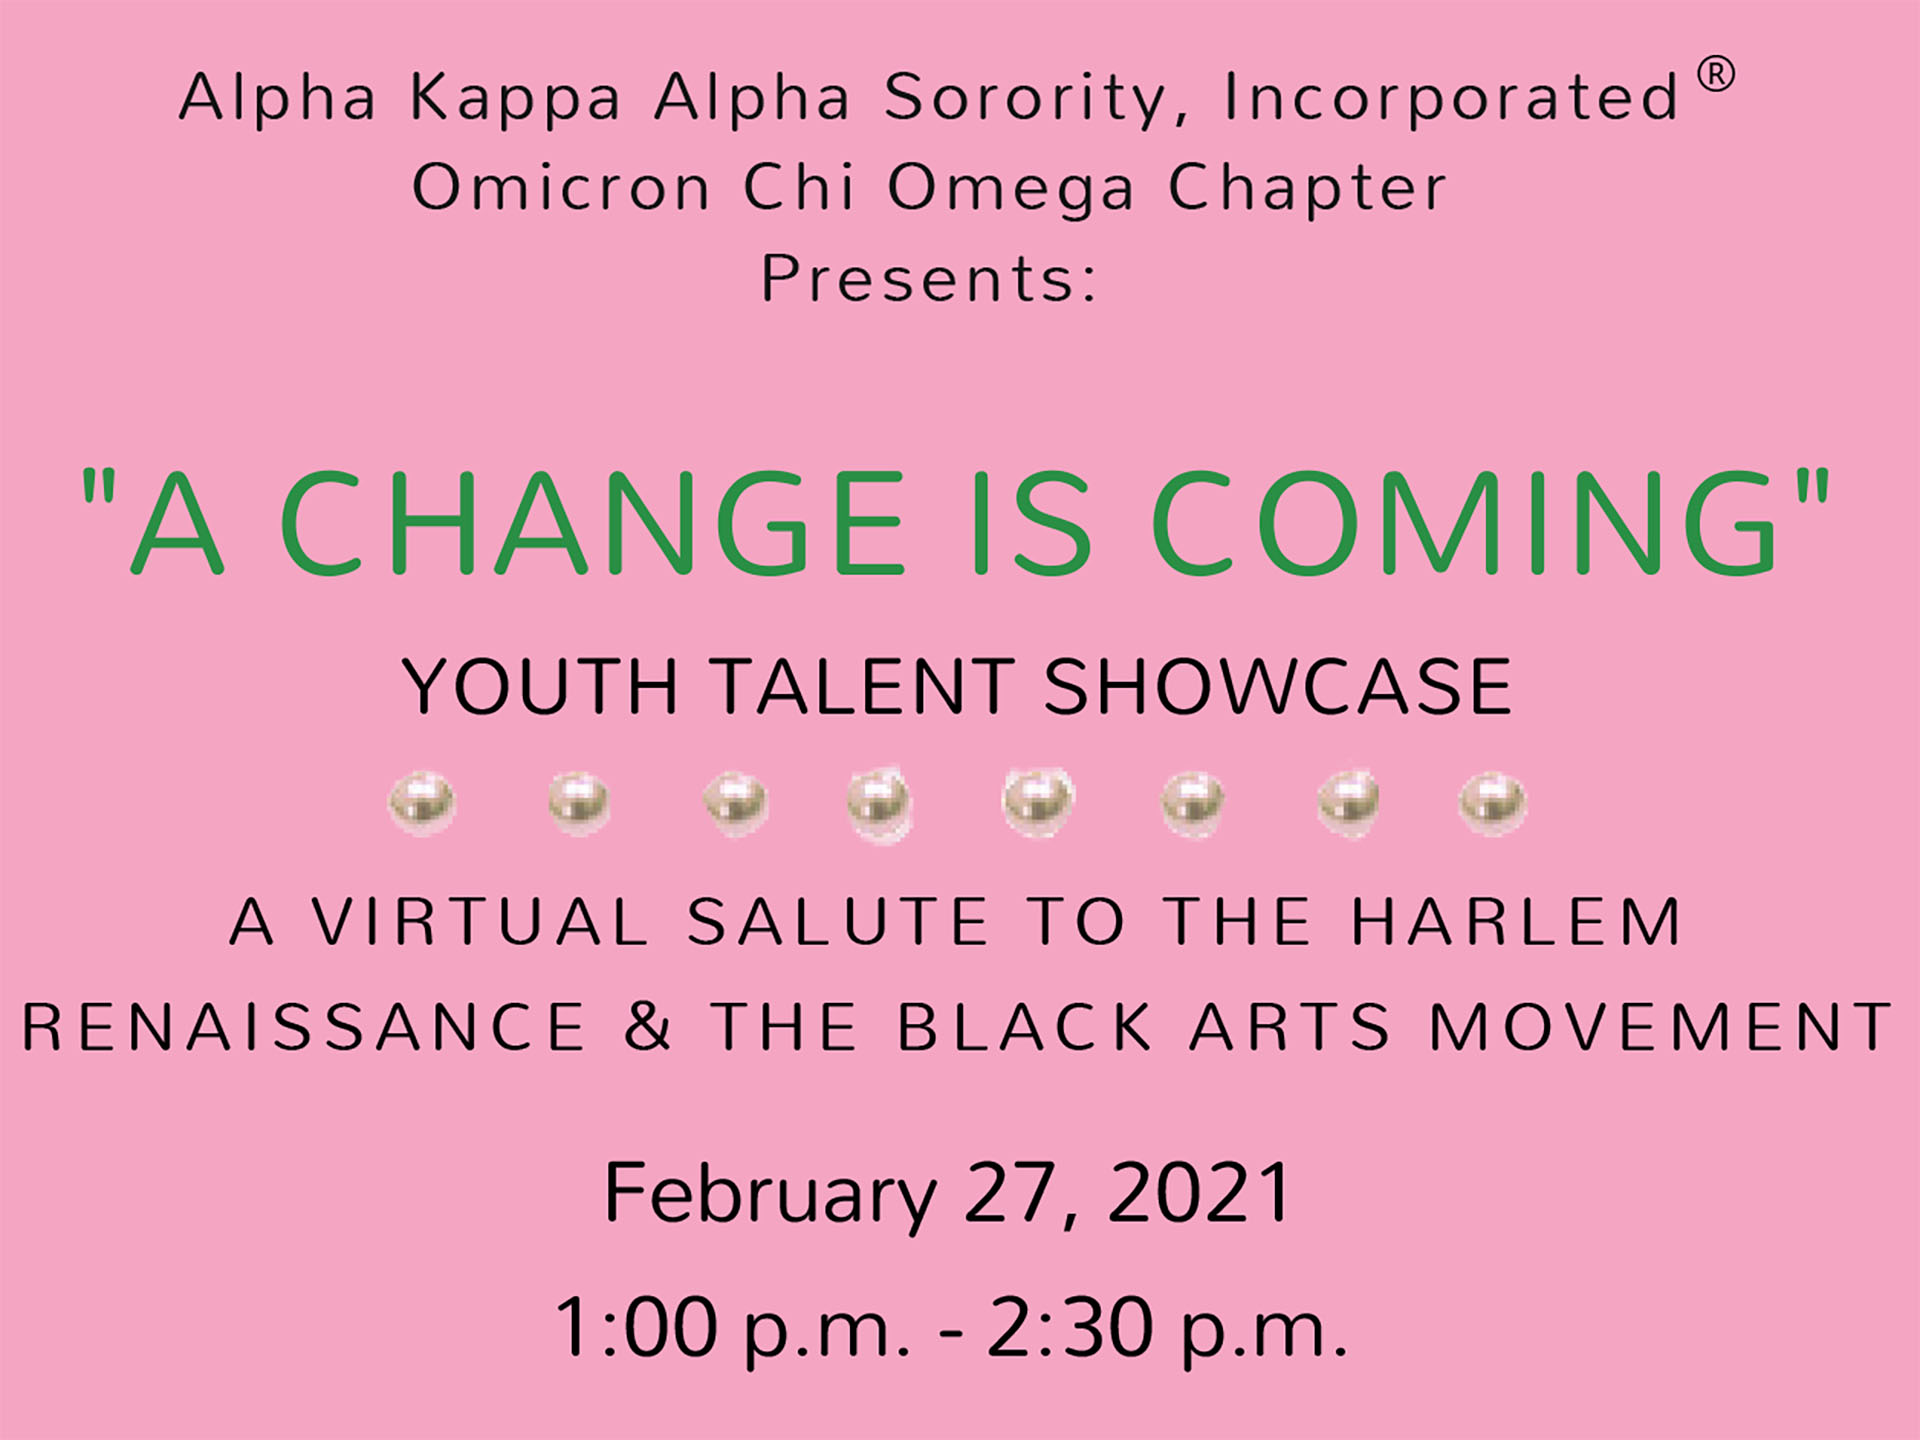 Youth Talent Showcase to be hosted by Woodbridge sorority